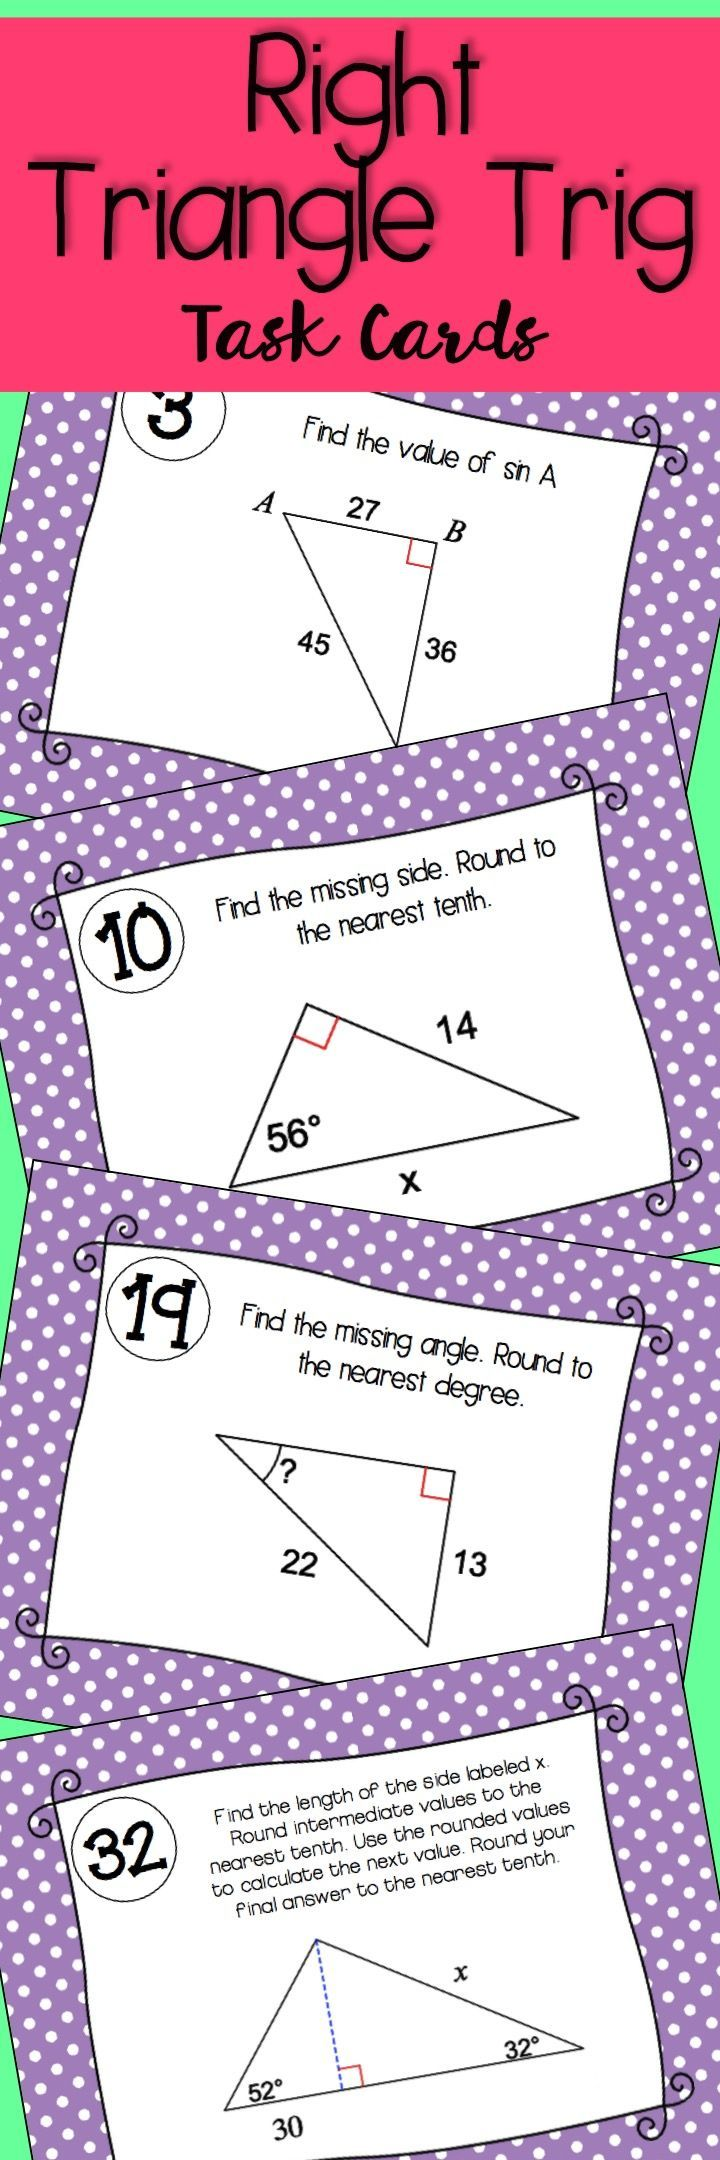 Right Triangle Trig Task Cards Since Cosine Tangent Task Cards Math Task Cards Right Triangle